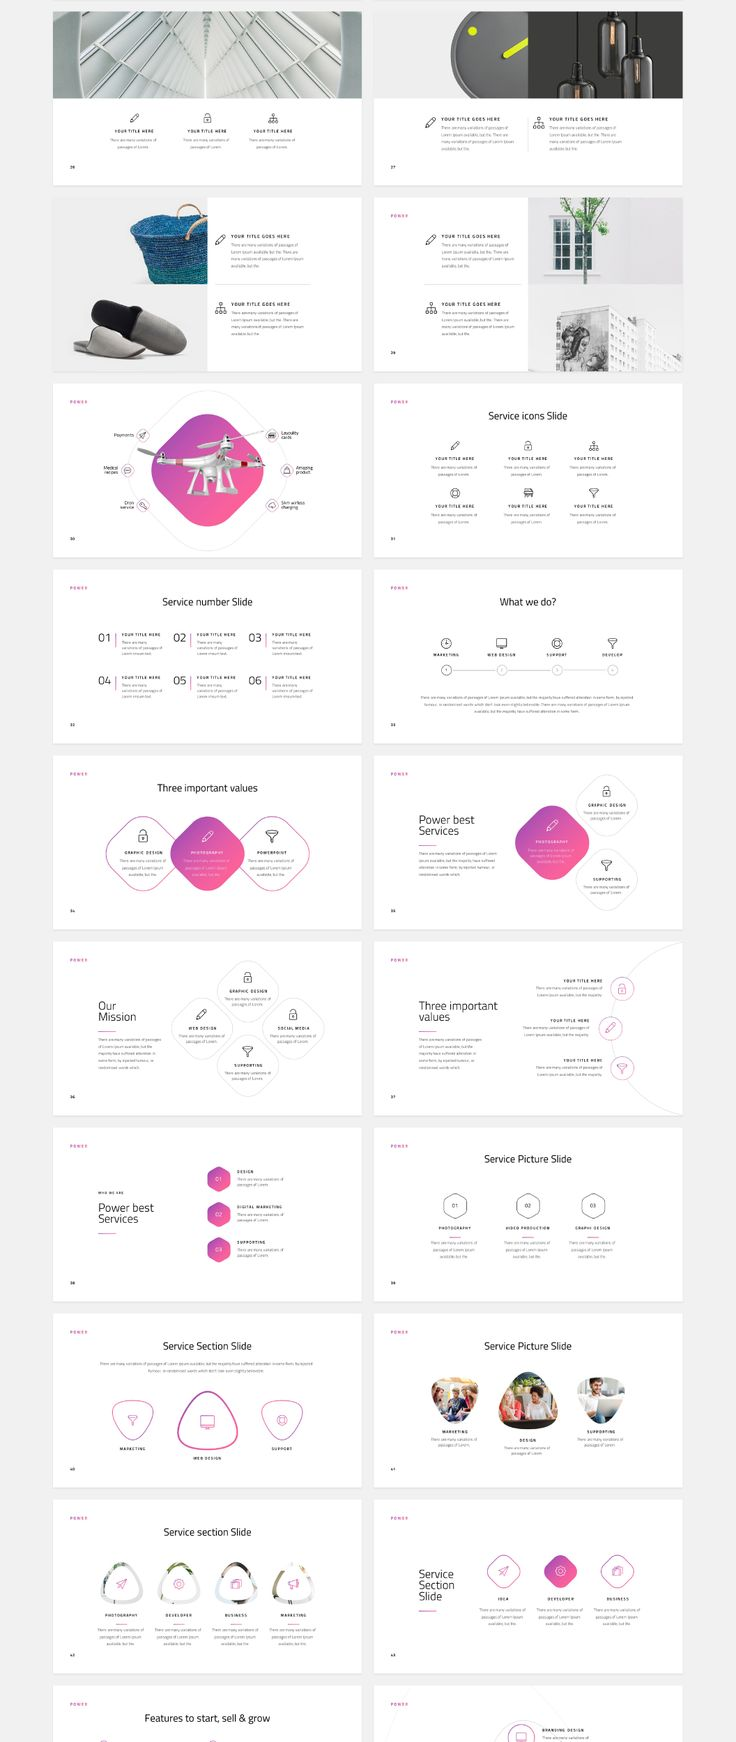 A powerful & creative slide presentation designed for Keynote & Powerpoint. Power includes 120+ unique presentation slides with a stunning professional layout and creative design. Easy to change colors, modify shapes, texts, & charts. All shapes are editable. Icons and only powerpoint 20 colors versions included.